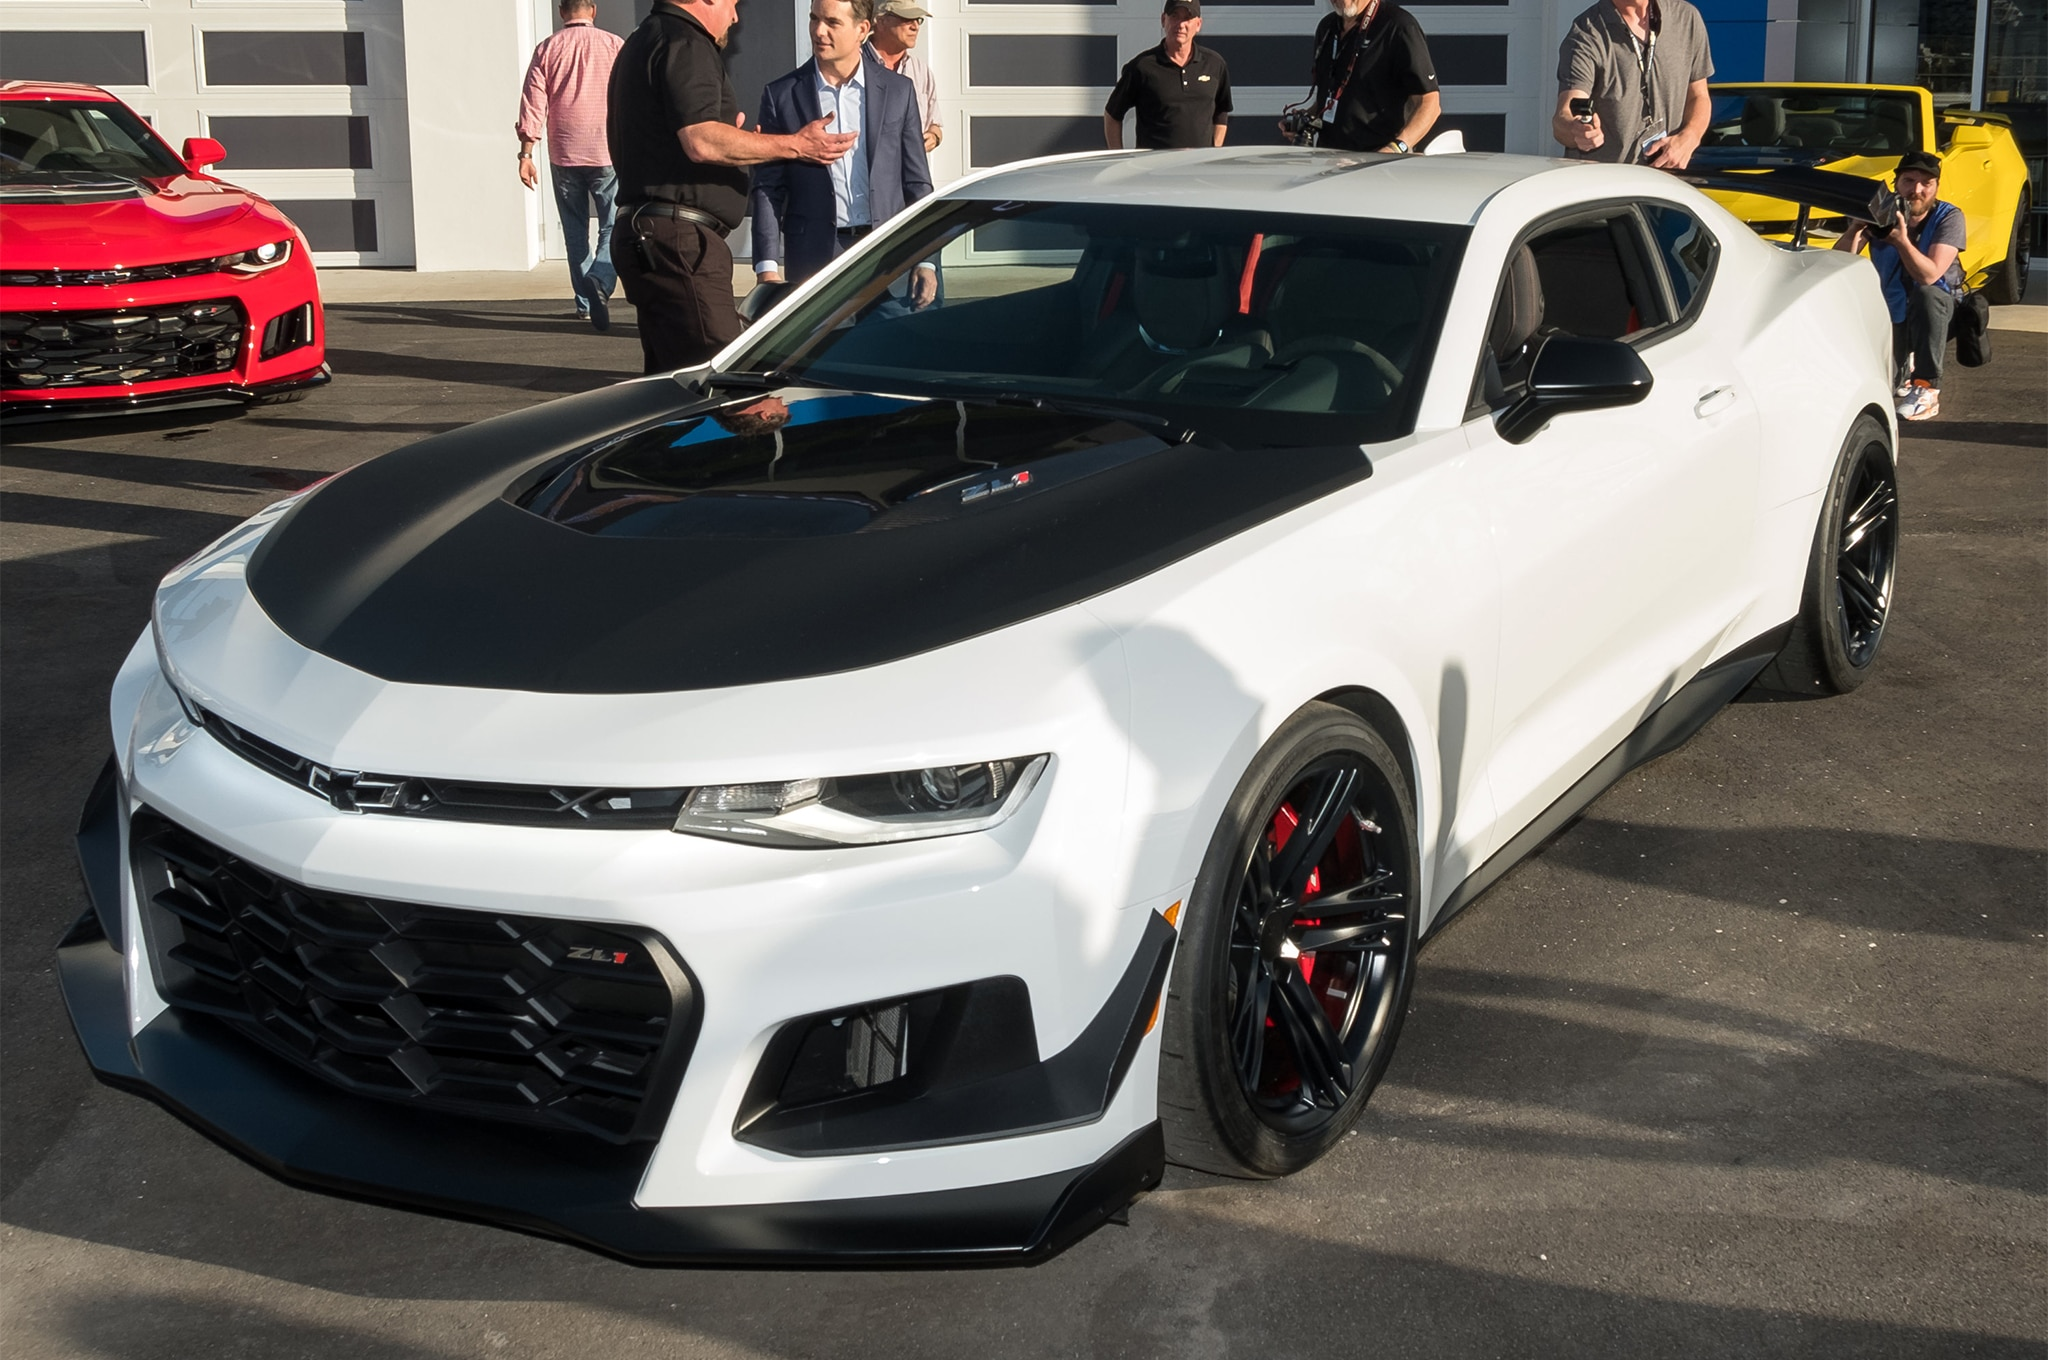 2018 Camaro Zl1 Pictures To Pin On Pinterest Pinsdaddy